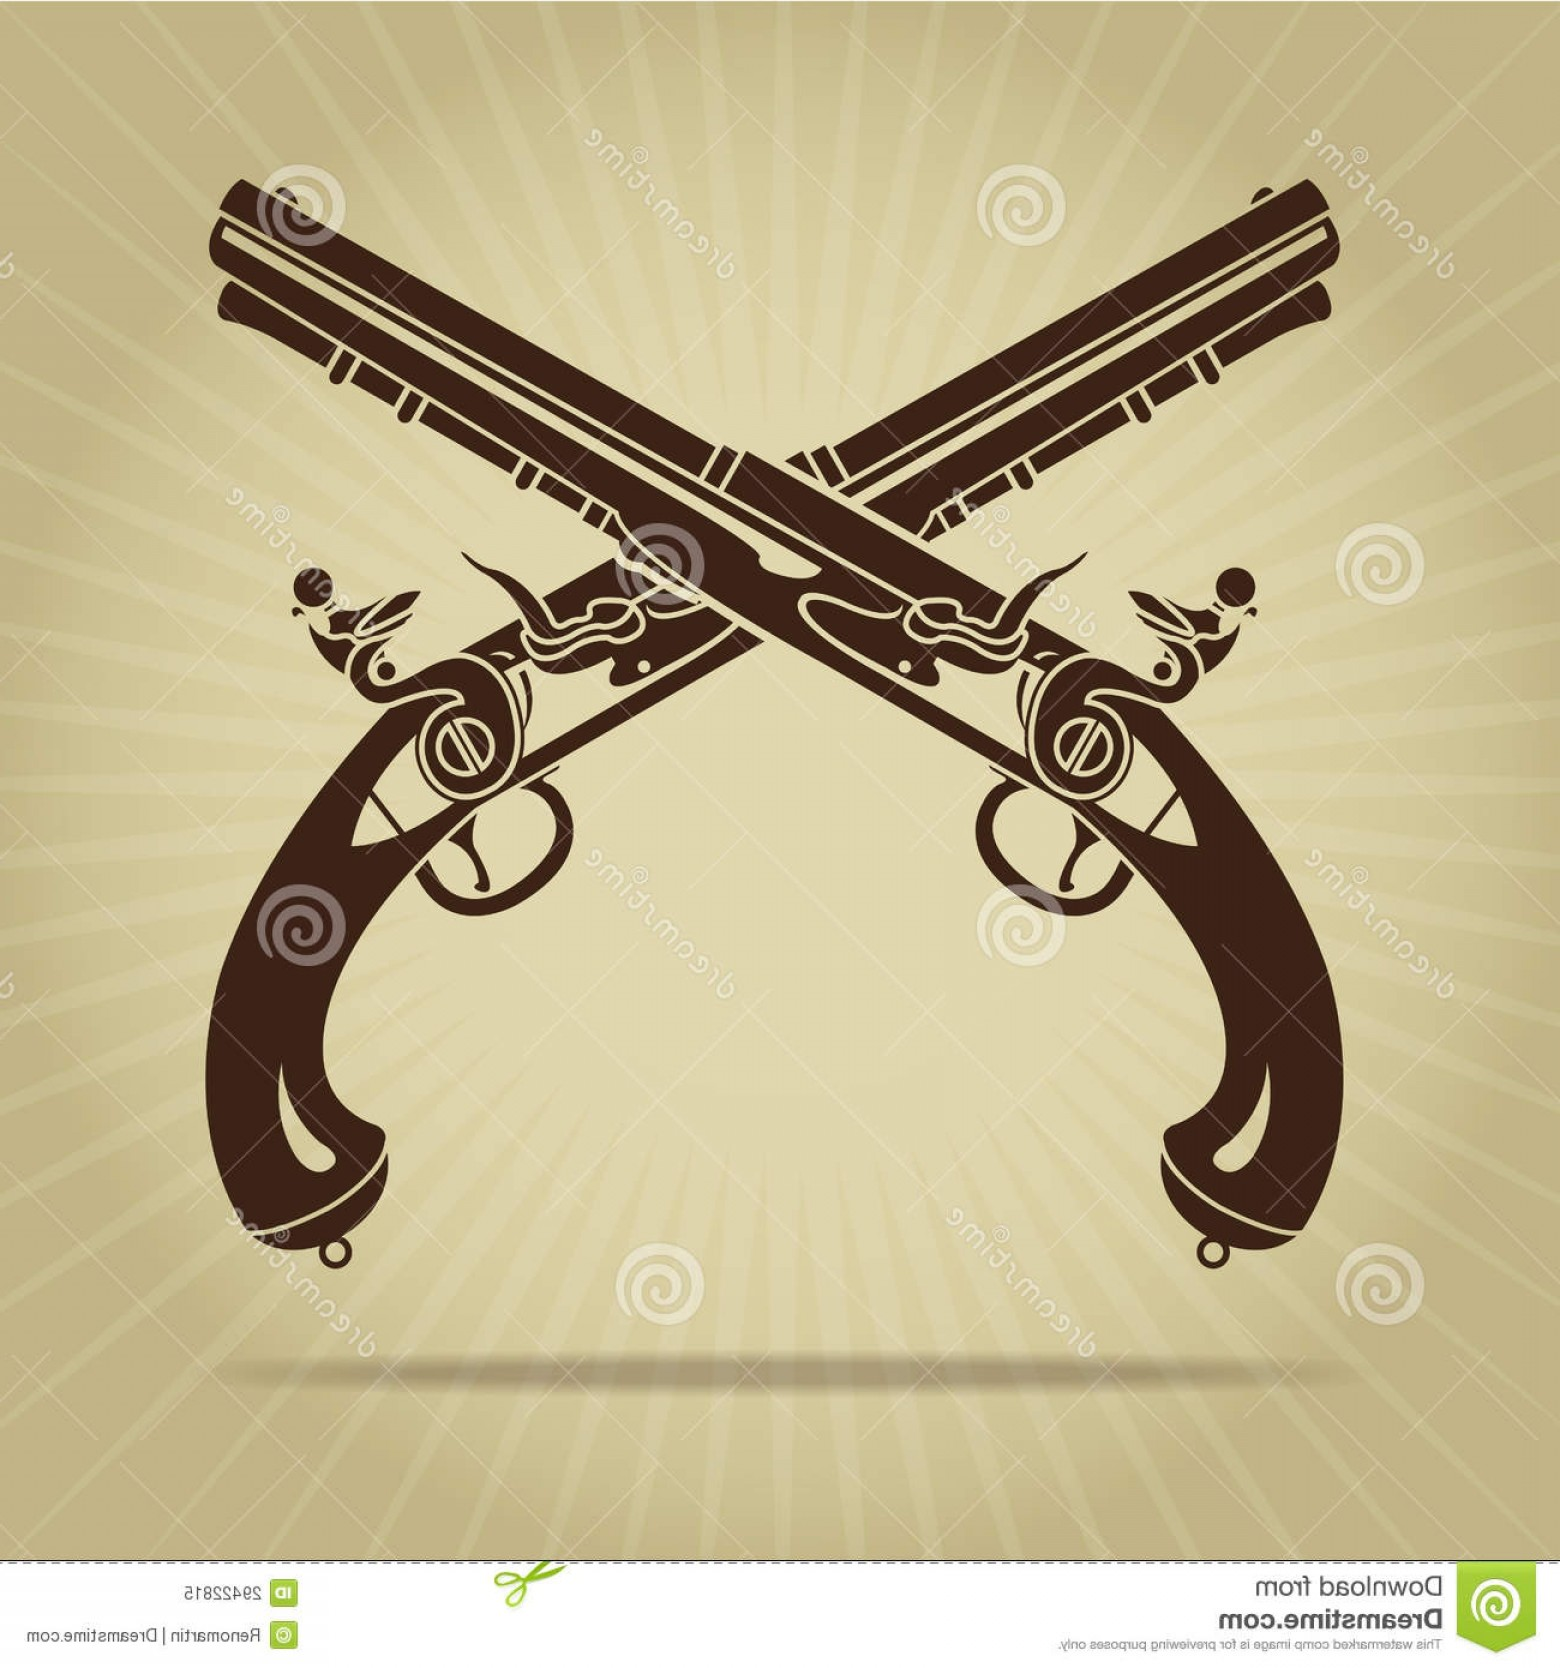 Vintage Crossed Pistols Vector: Royalty Free Stock Photo Vintage Crossed Flintlock Pistols Silhouette Image